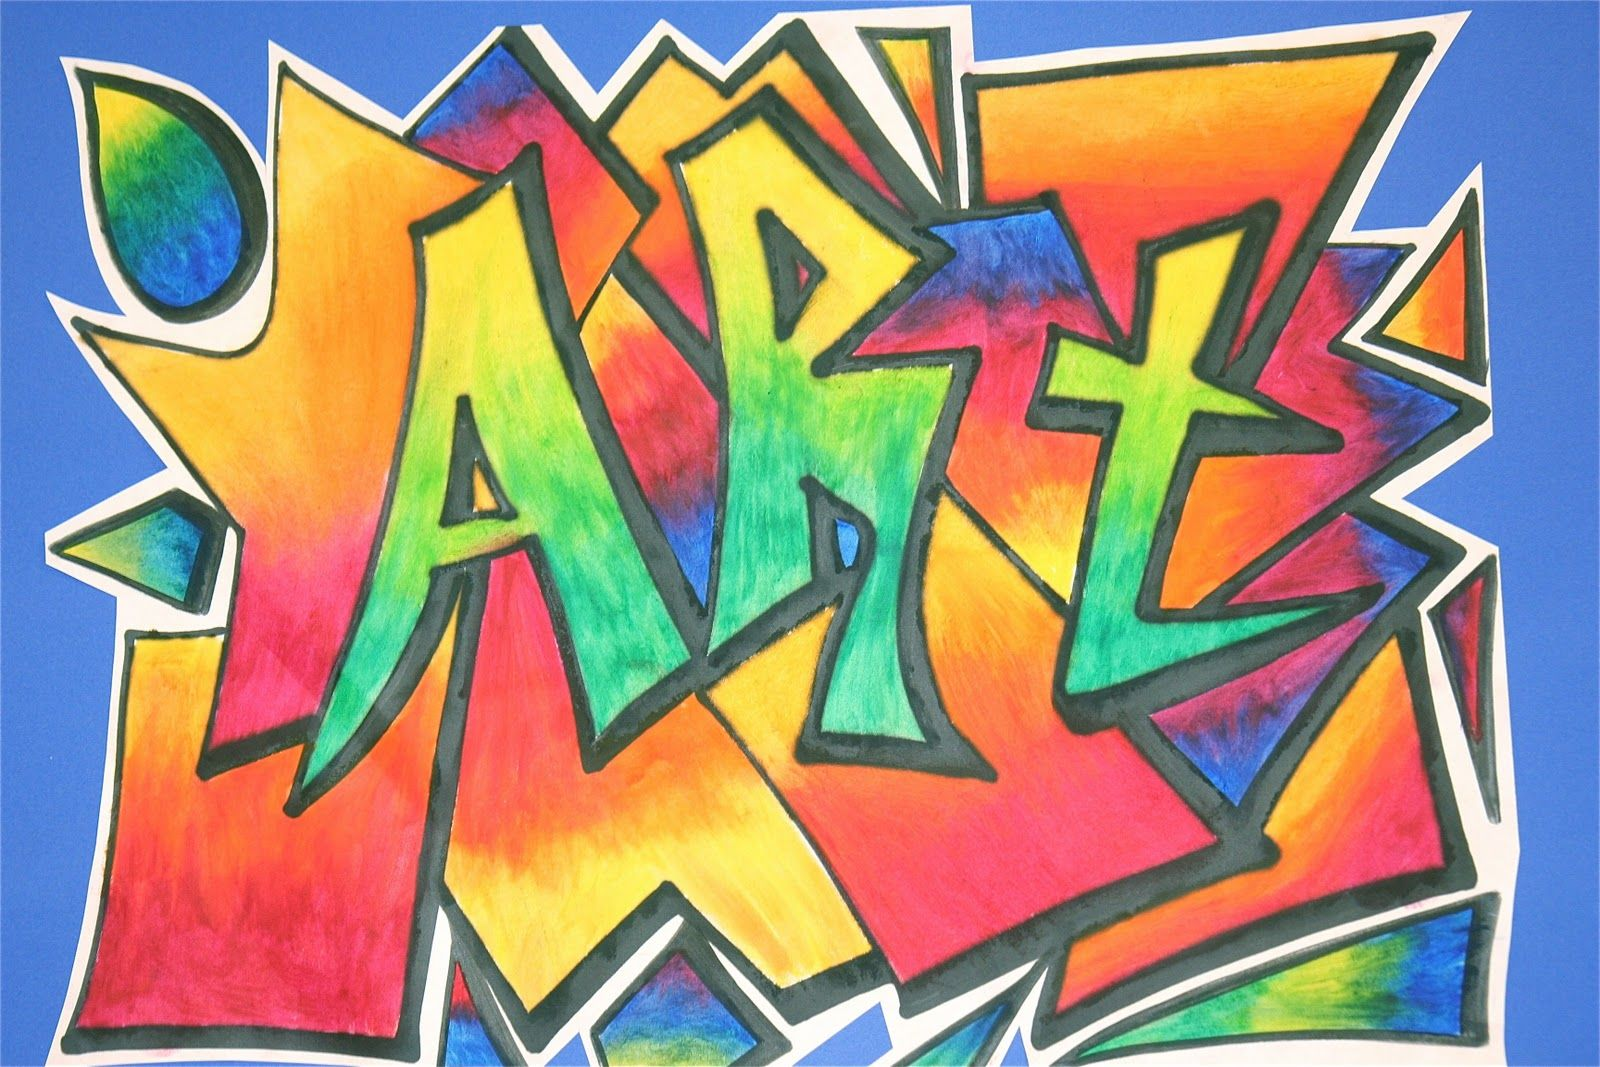 This Was A Really Fun Lesson To Do With My Older Students It Started Out As A 5th Grade Art Club Project But Elementary Art Street Art Graffiti Art Lessons